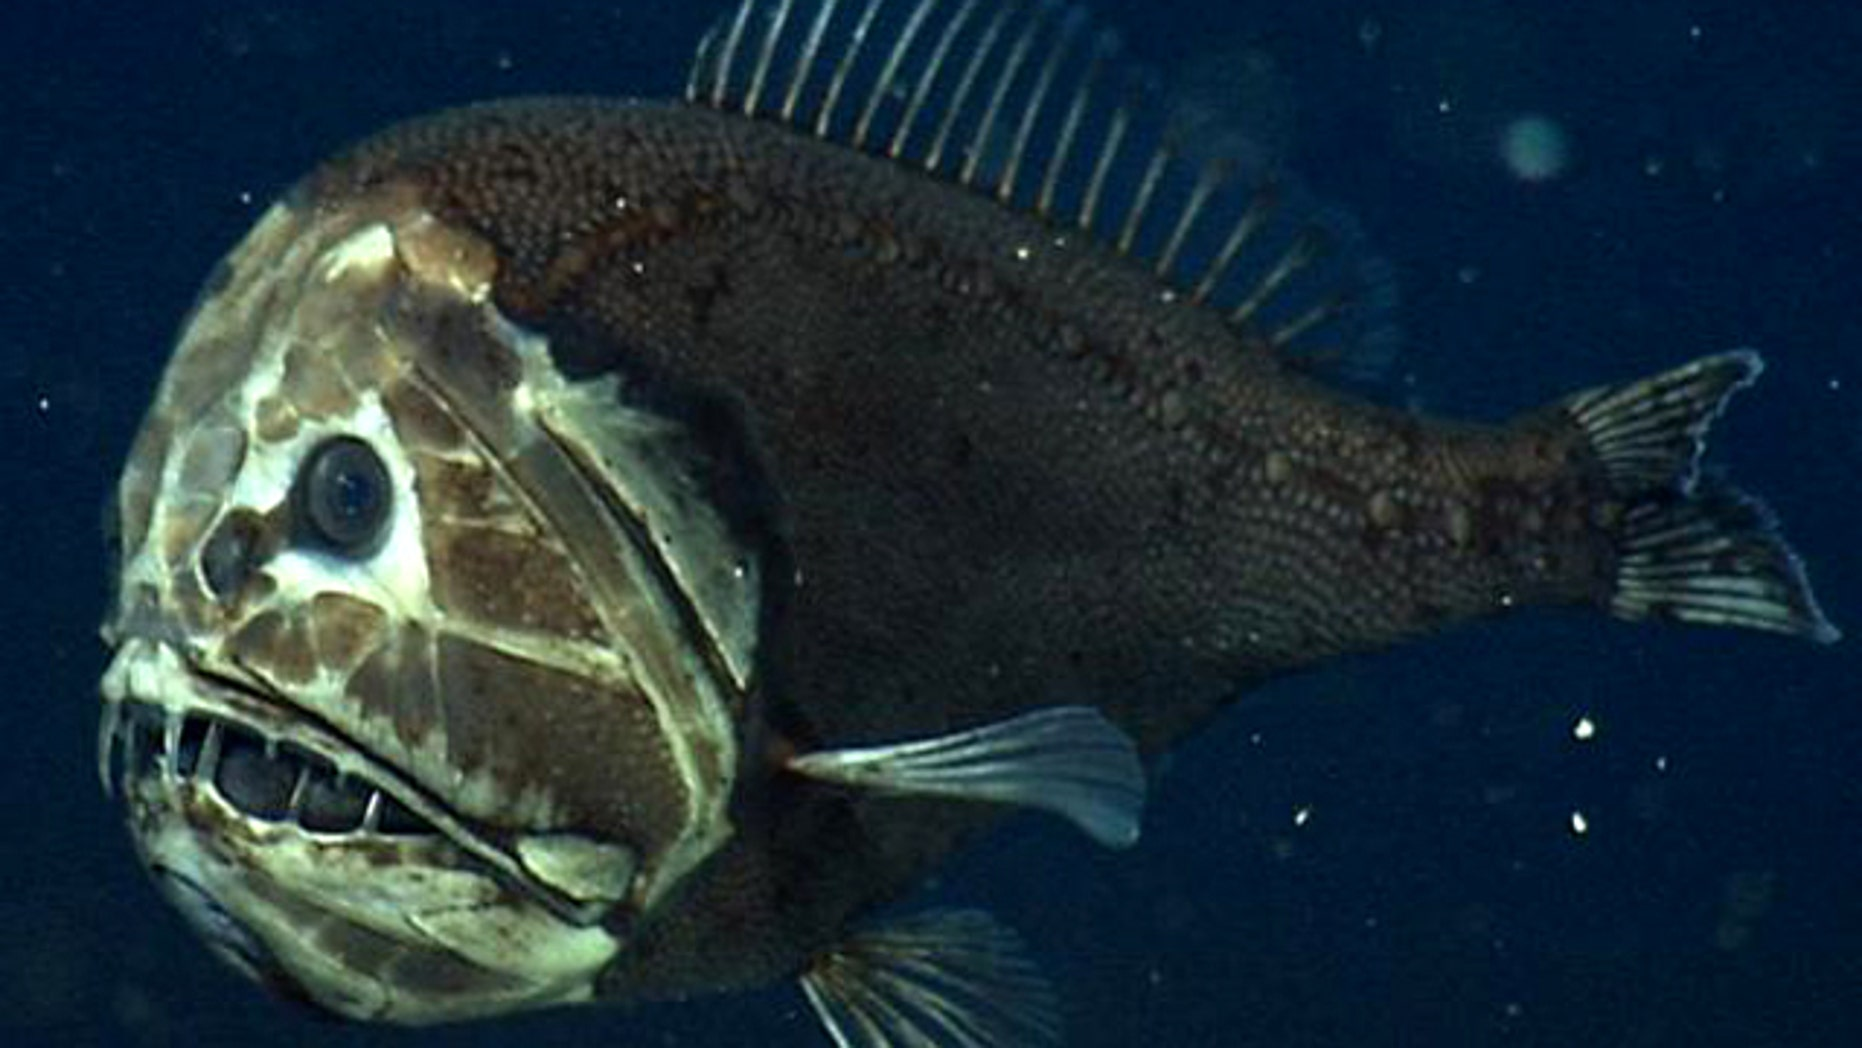 A fangtooth, photographed at about 2,600 feet (800 m.) below the surface of California's Monterey Bay. This fish's fierce appearance belies its size  it's only about 5 inches (12 centimeters) long. But thanks to its huge mouth and teeth, a fangtooth can grab and eat fish and squid almost its own size.